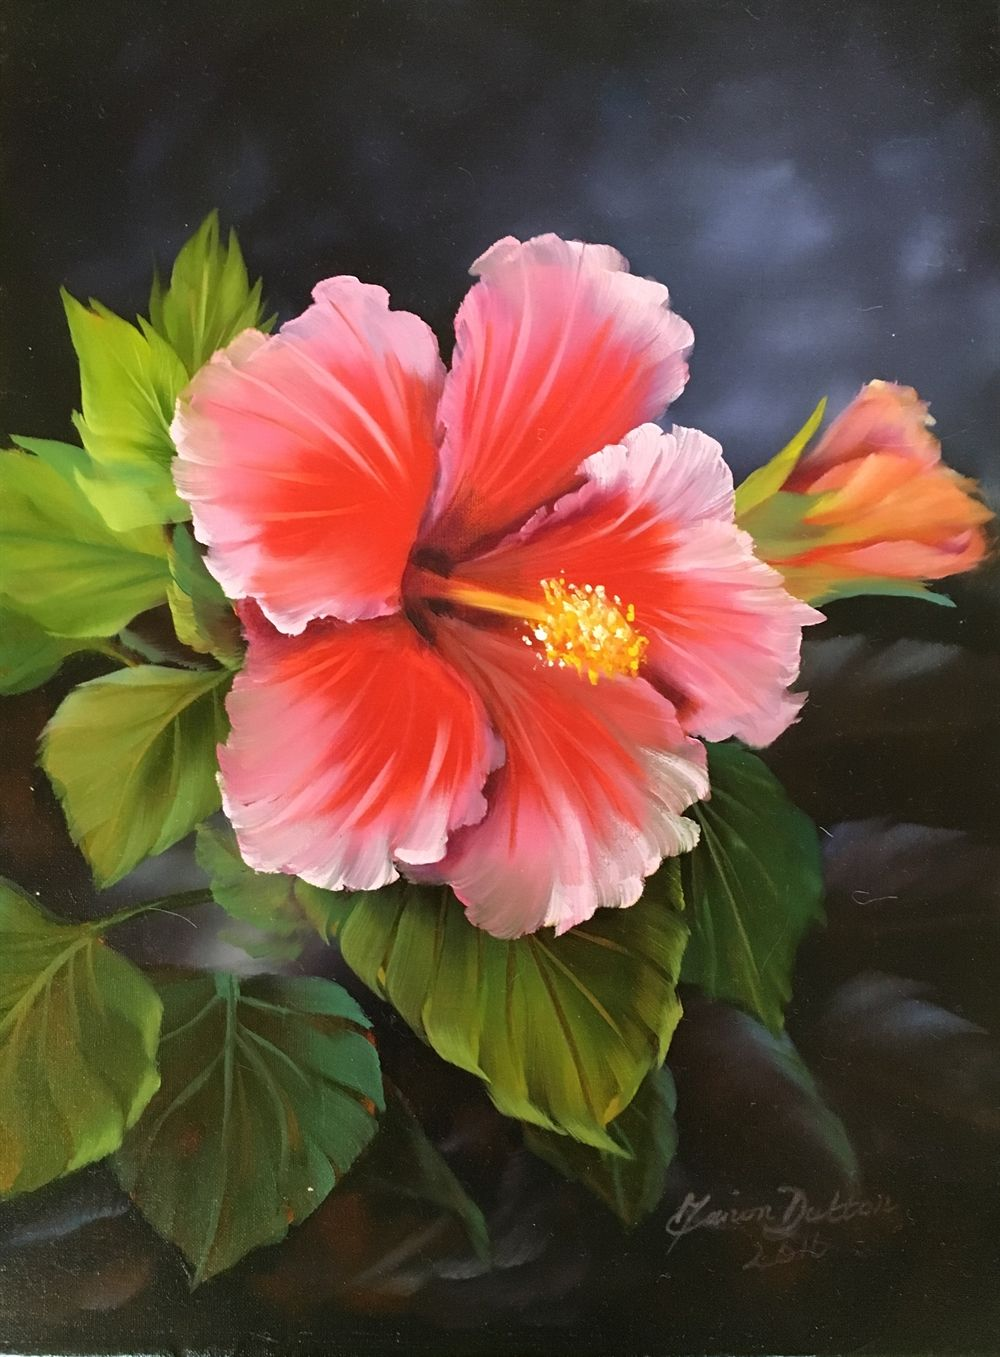 The Pink Hibiscus Oils Over Acrylic Flores Pintadas Pintura De Flores En Acrilico Pintura De Tulipan